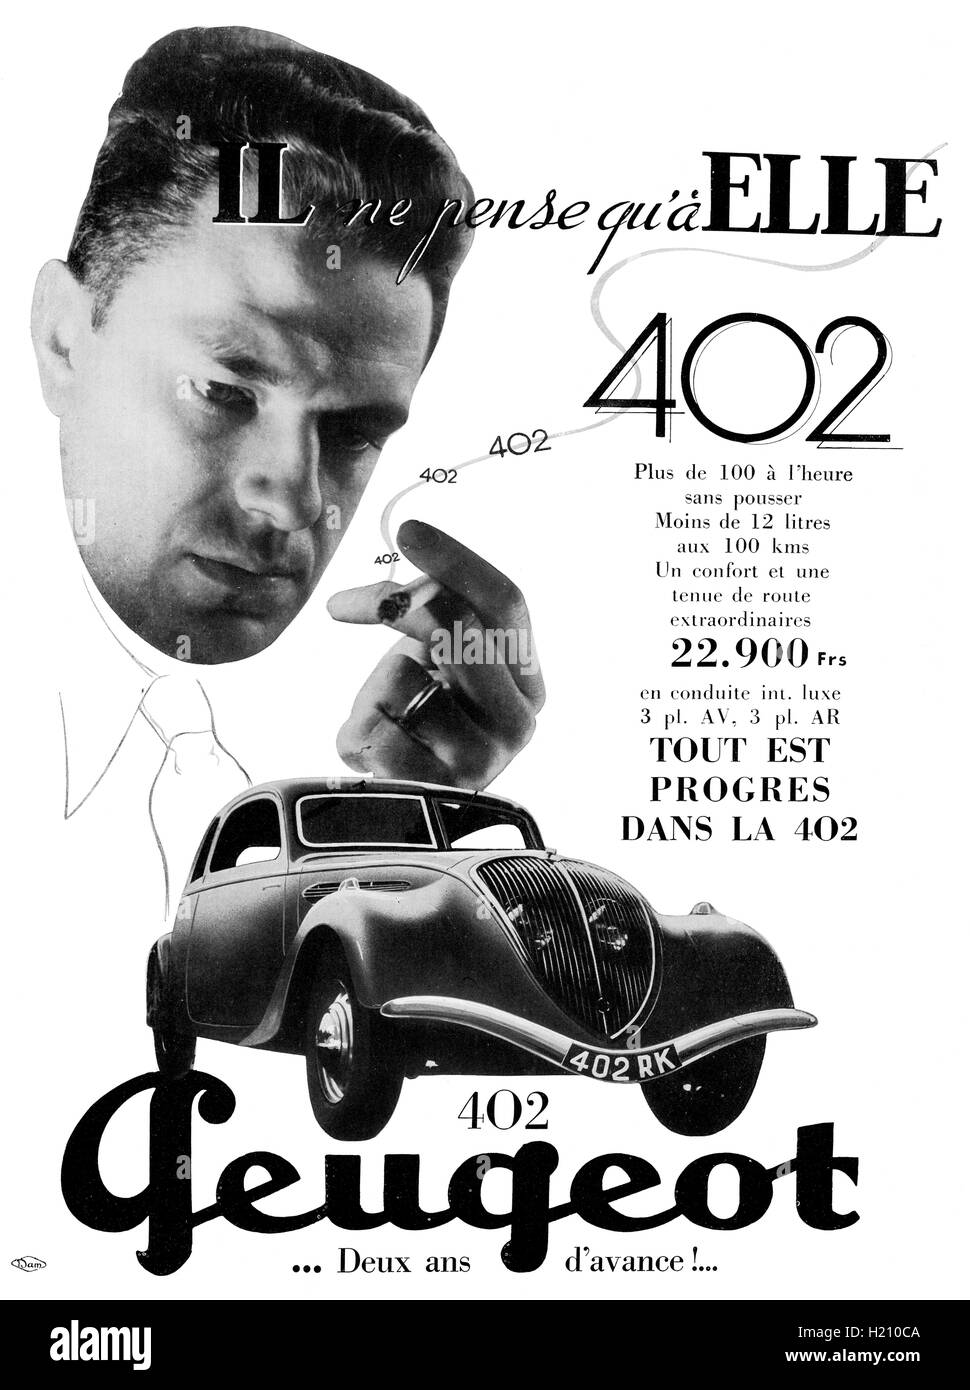 La publicité automobile de Peugeot 402. Vogue Magazine, mars 1936. Édition française. Photo Stock